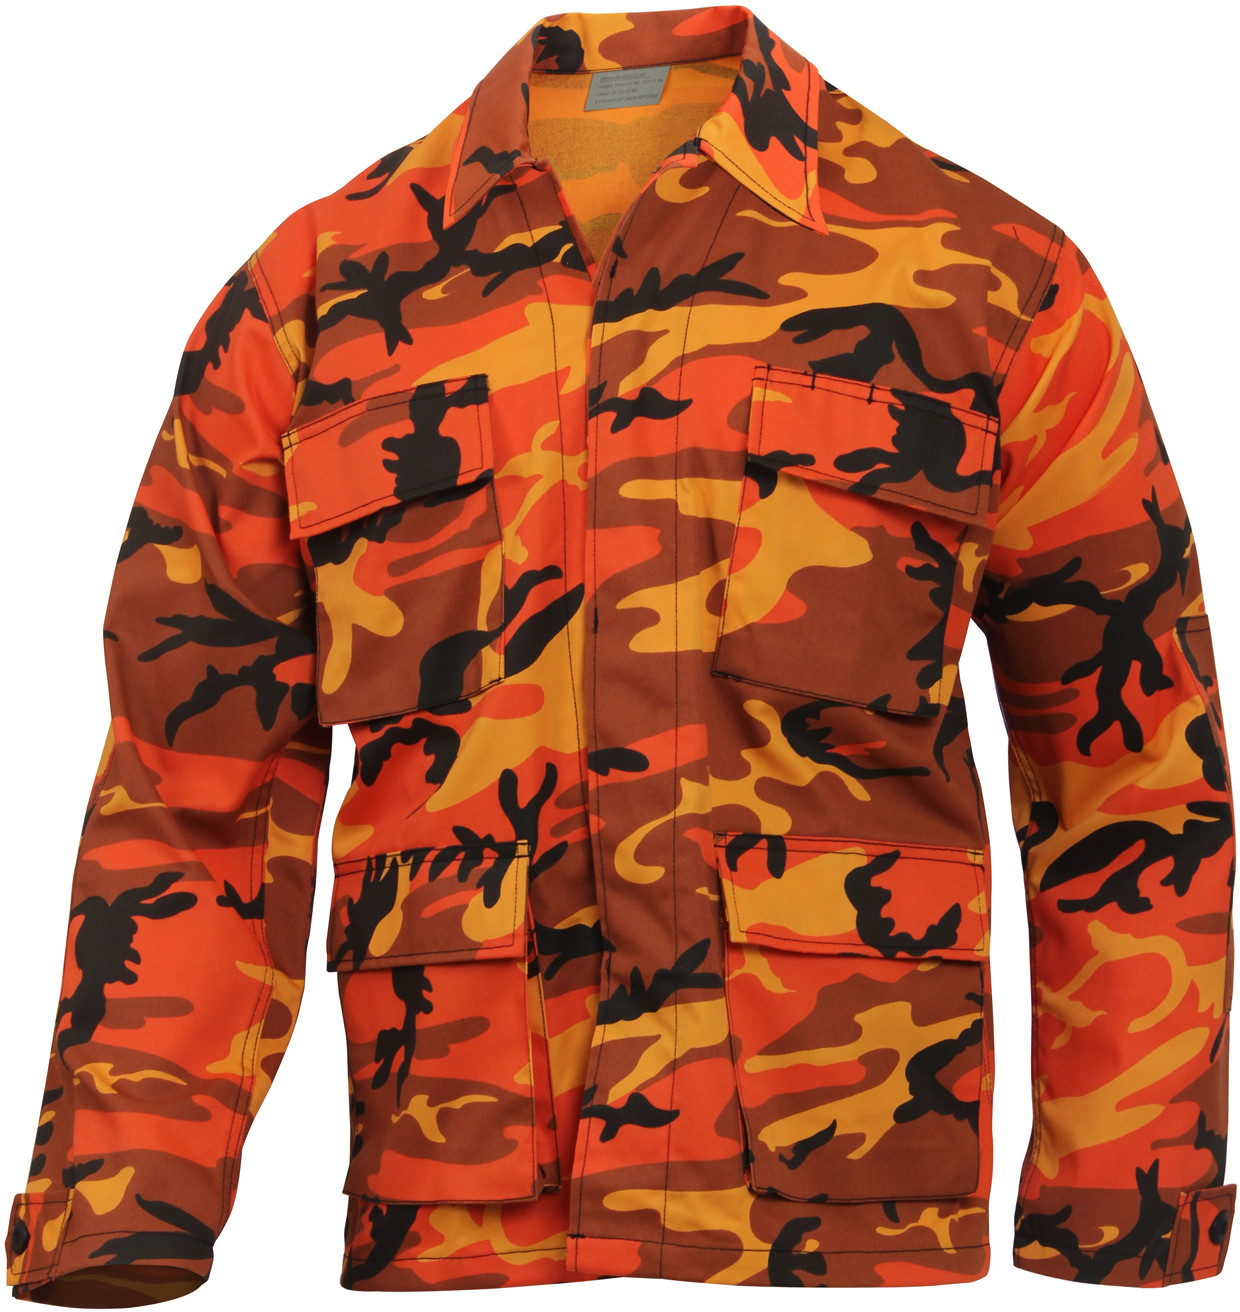 Savage Orange Camouflage Military BDU Fatigue Jacket Tactical ... eadd3493c94